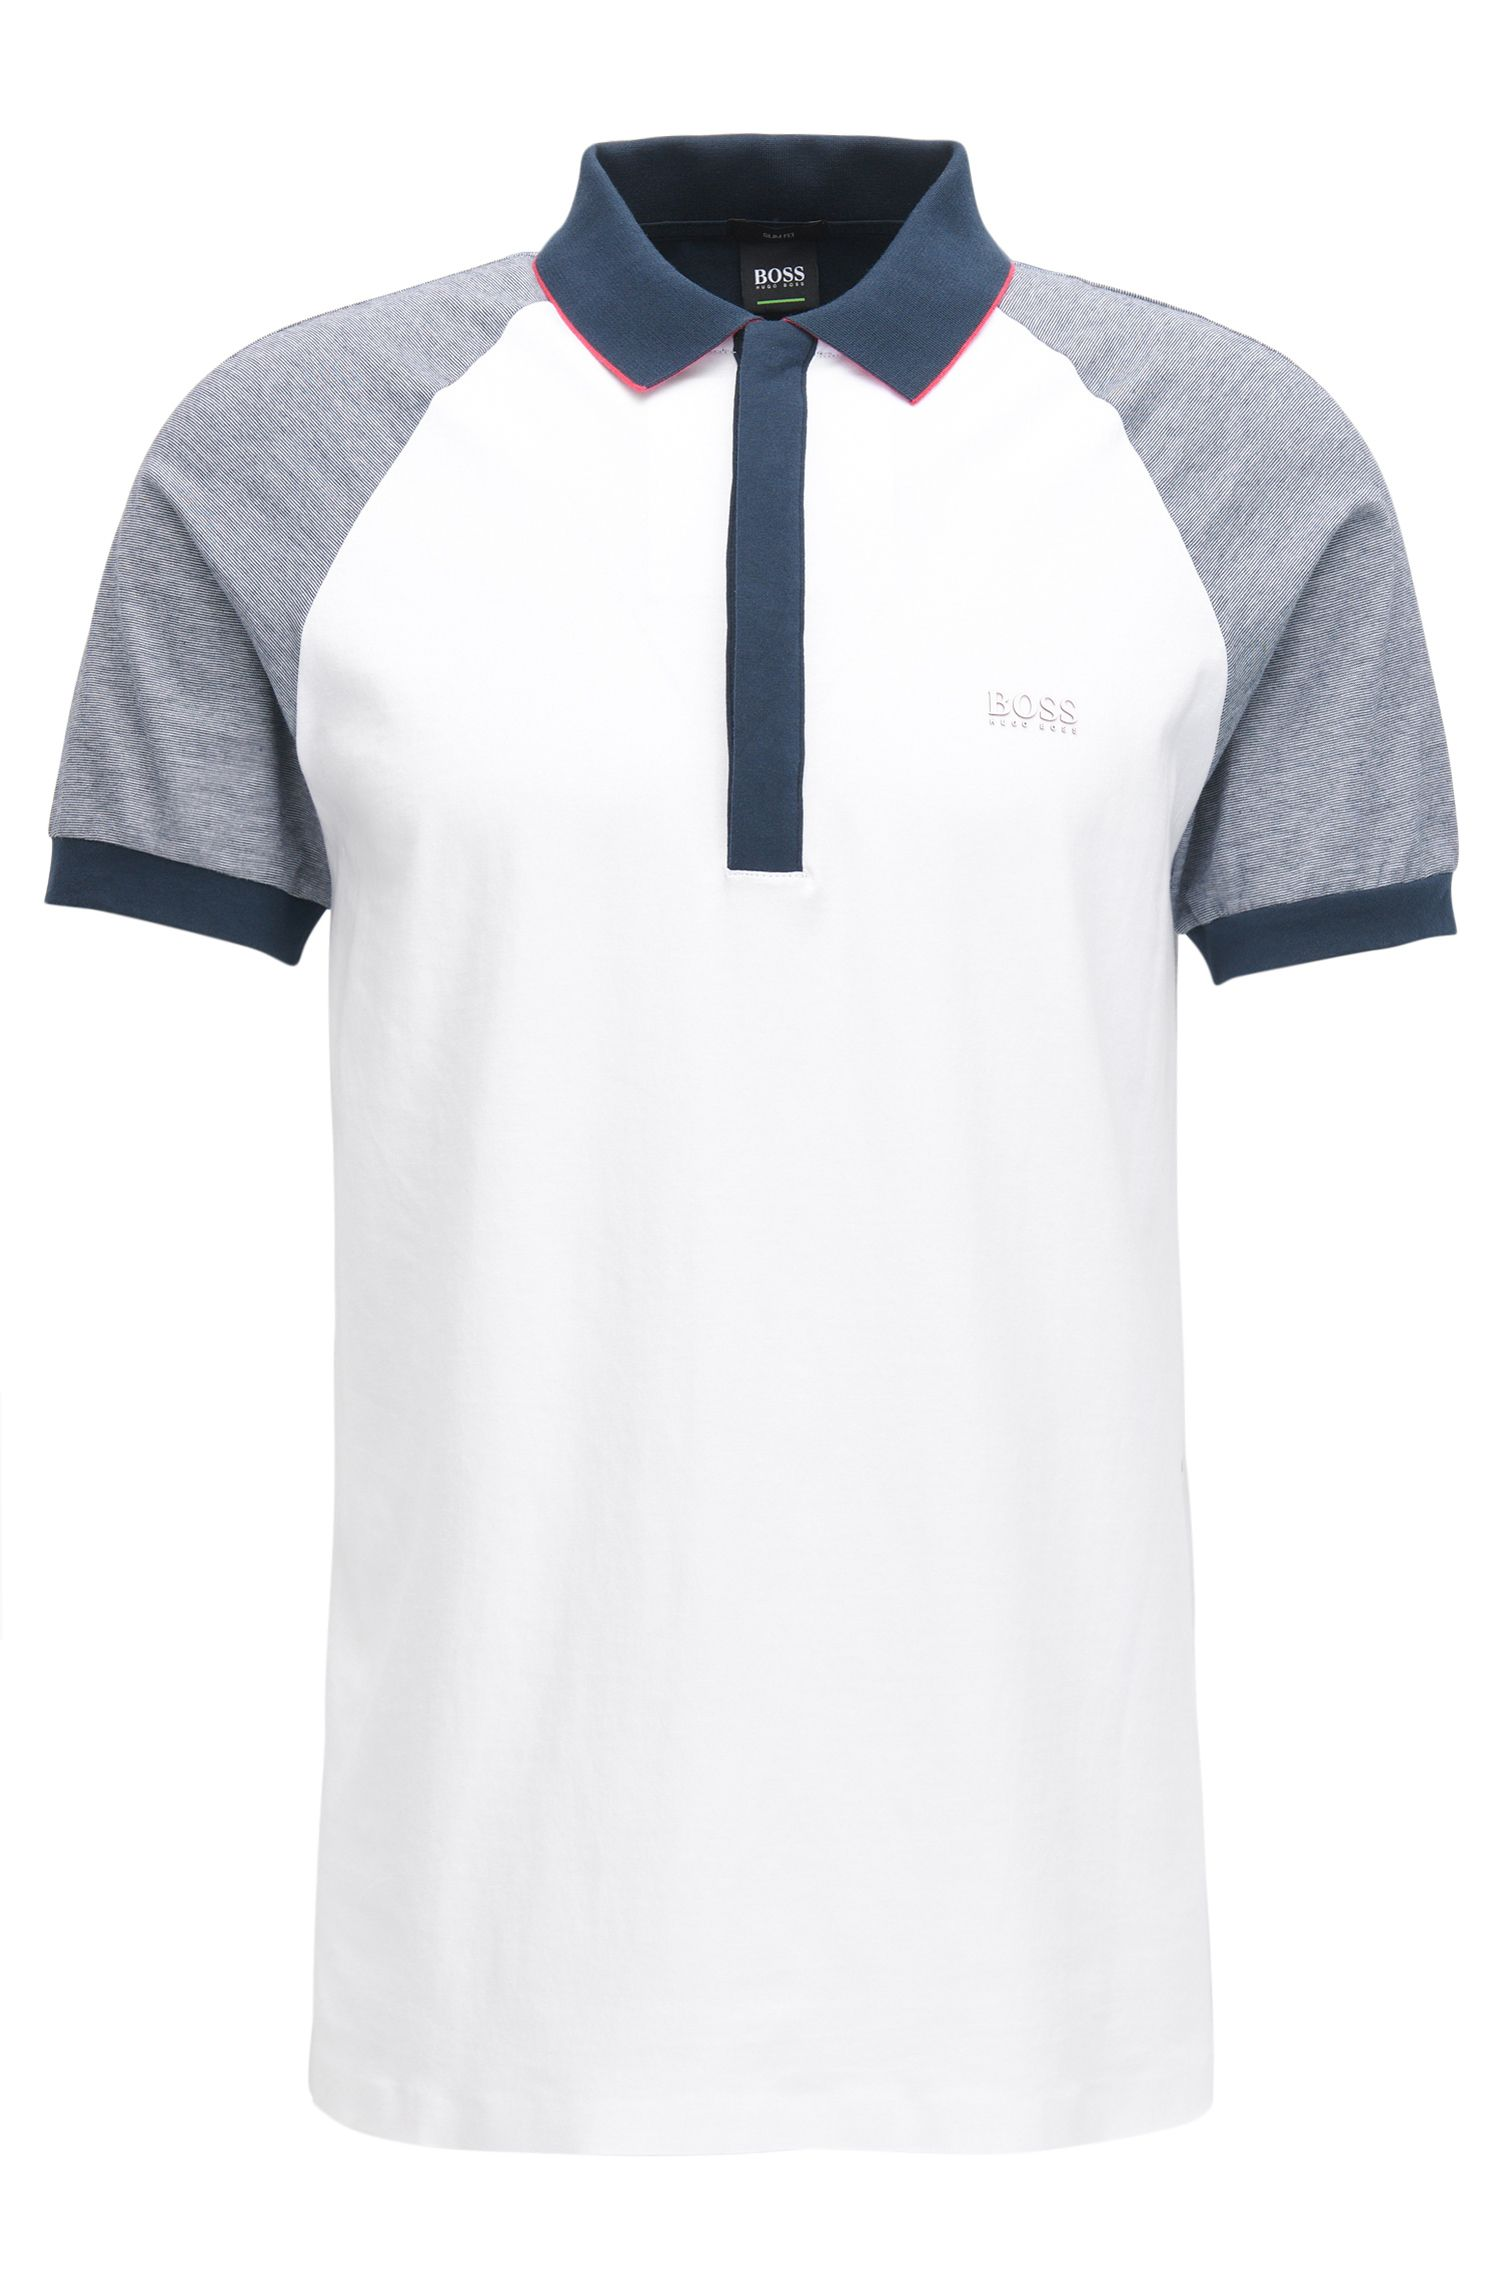 Colorblocked Cotton Polo Shirt, Regular Fit | Pless, White